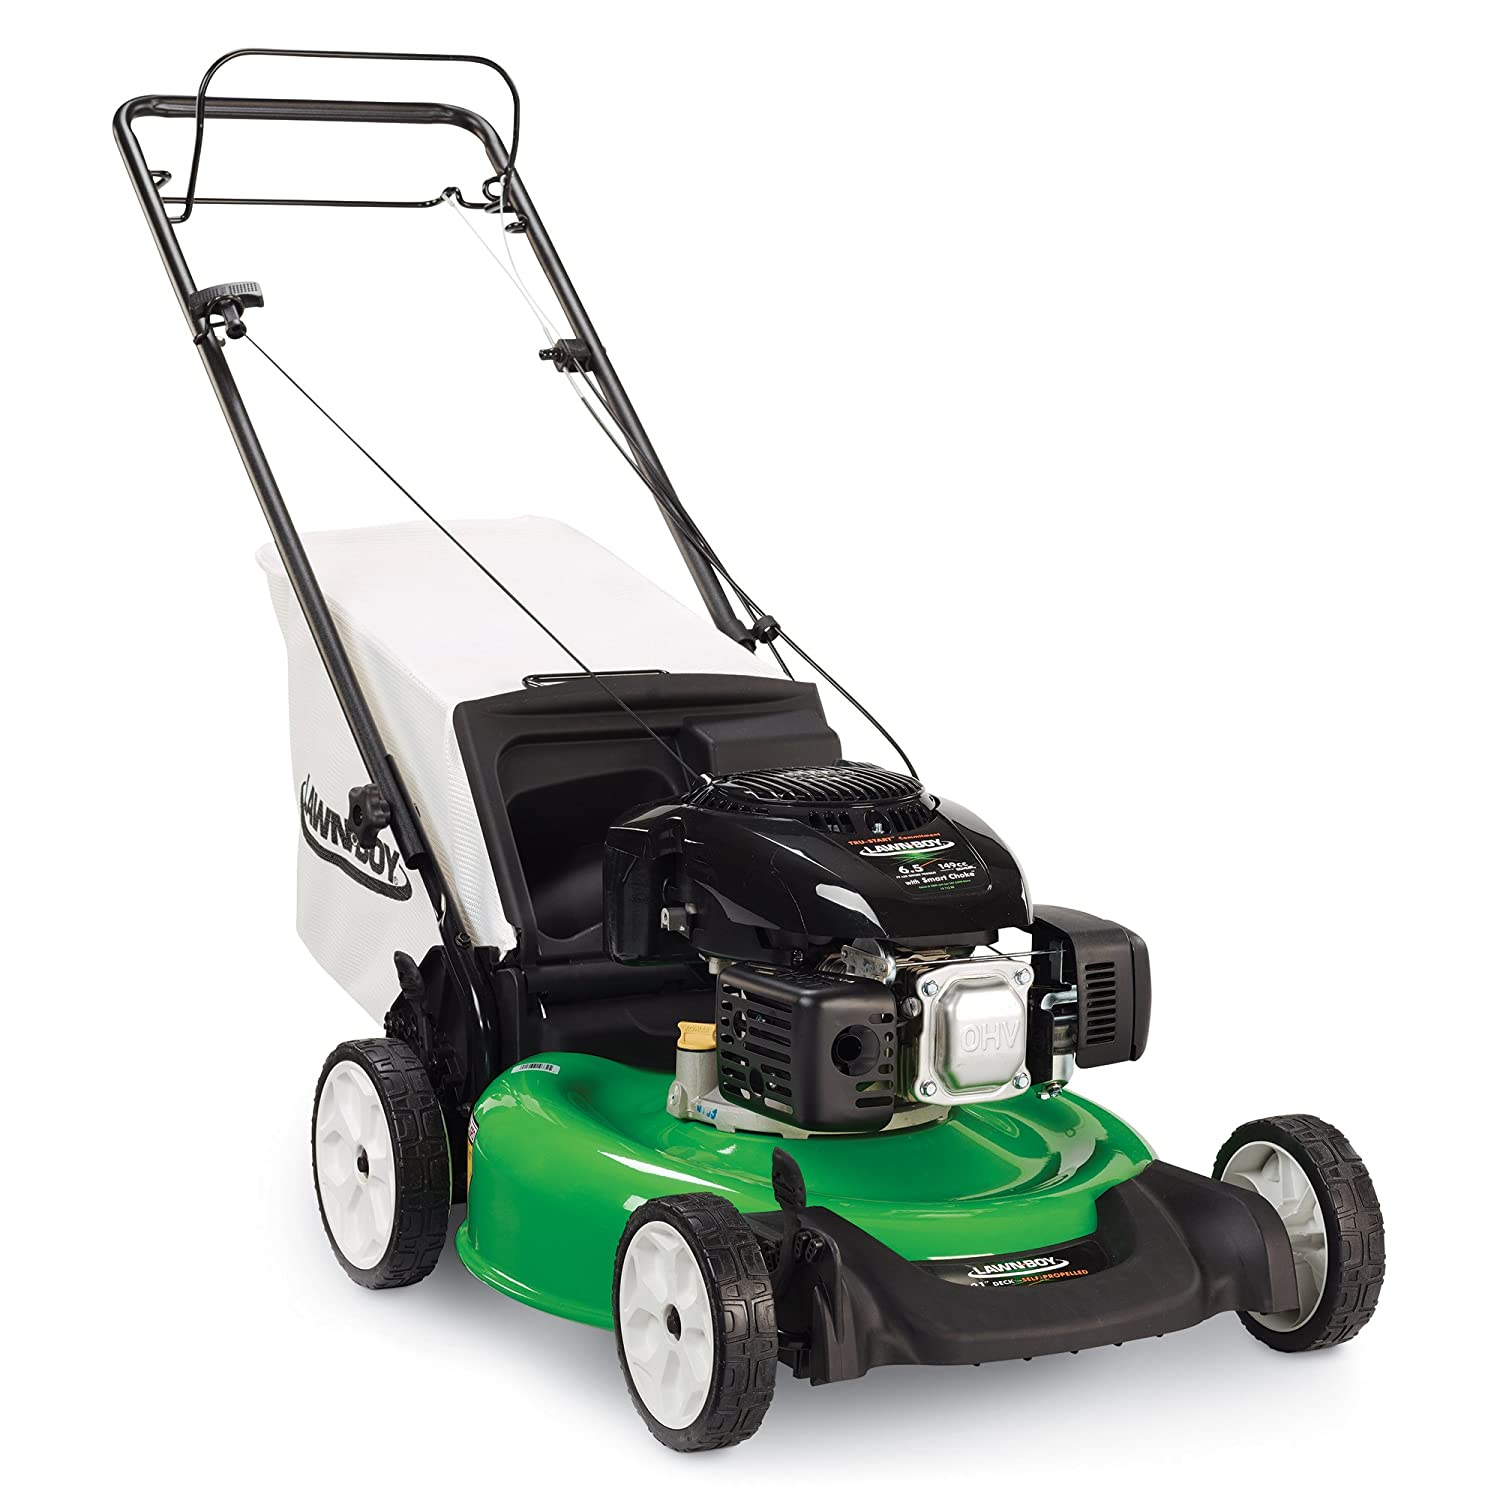 Lawn-Boy 10732 Kohler XT6 OHV, Rear Wheel Drive Self Propelled Gas Lawn Mower, 21-Inch